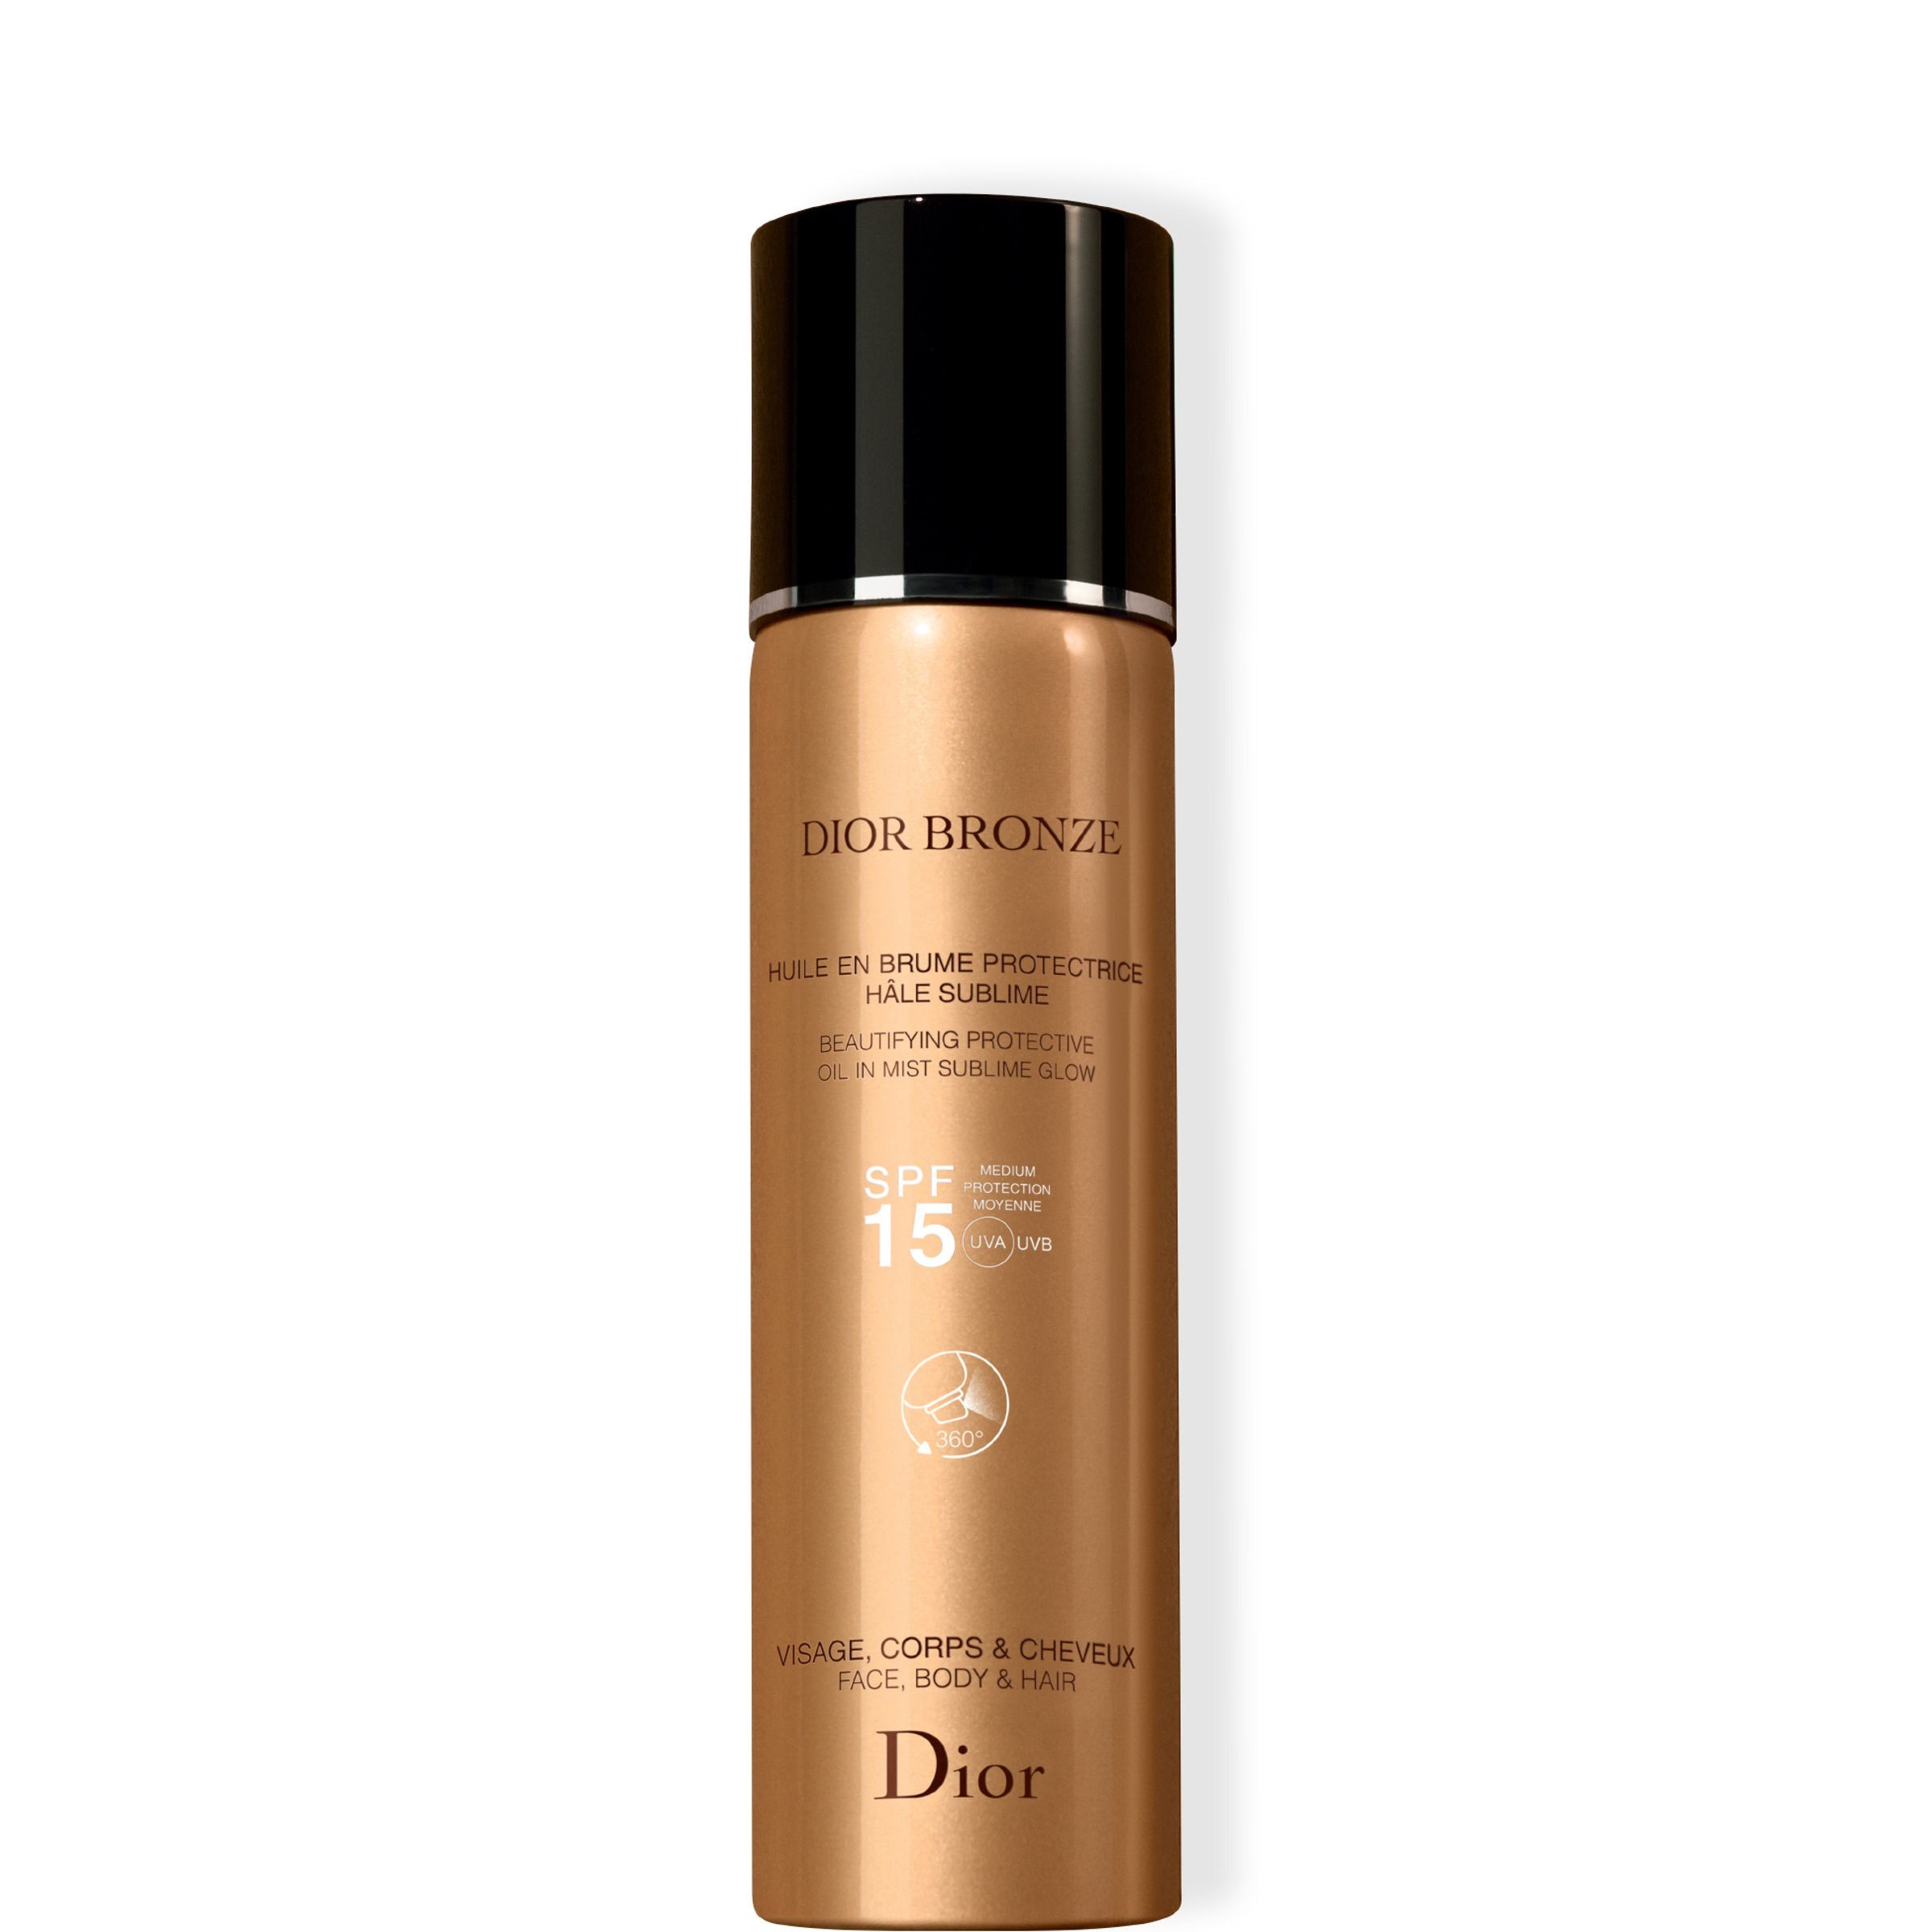 Bronze Beautifying Protective Oil-in-Mist SPF 15 125ml